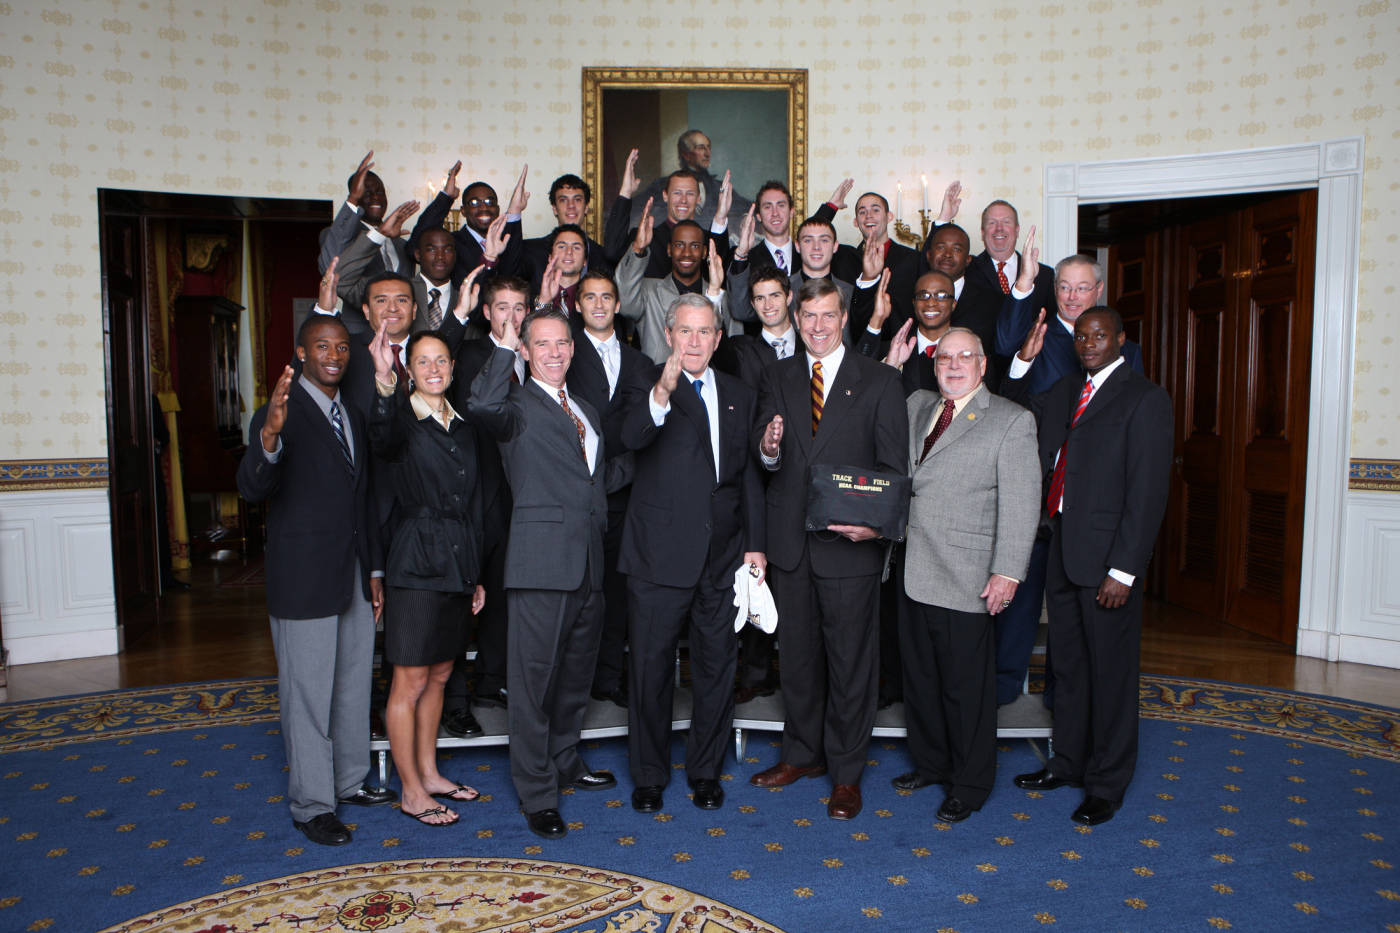 The Men's Track and Field team meets with the President of the United States after winning the National Championship.